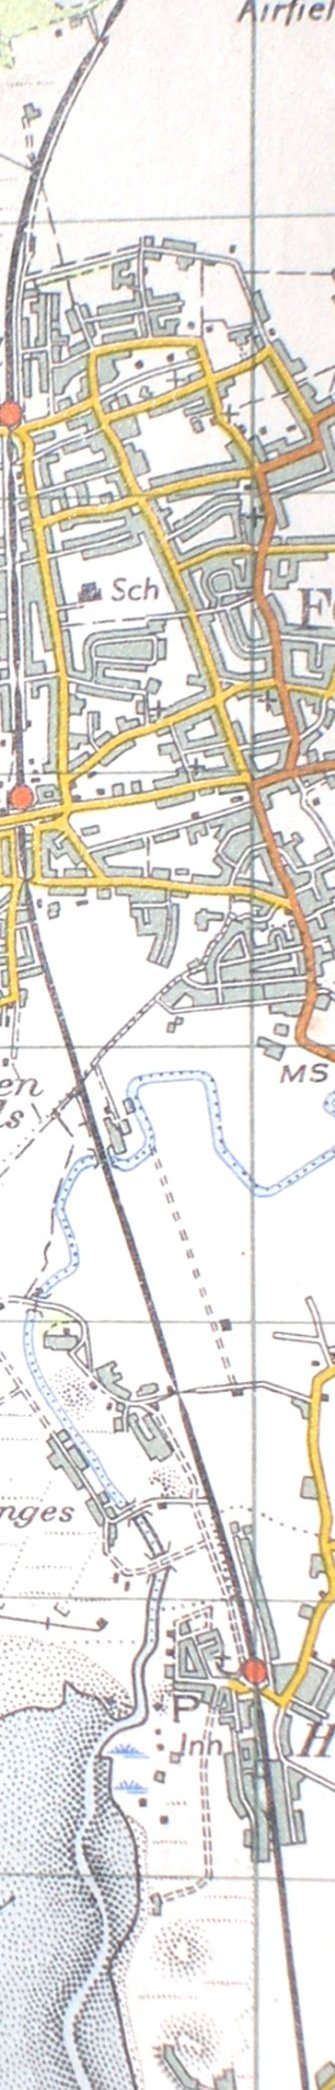 A section from the 1961 Ordnance Survey Map showing the Liverpool - Southport line of the Lancashire & Yorkshire Railway between Freshfield and Hightown.